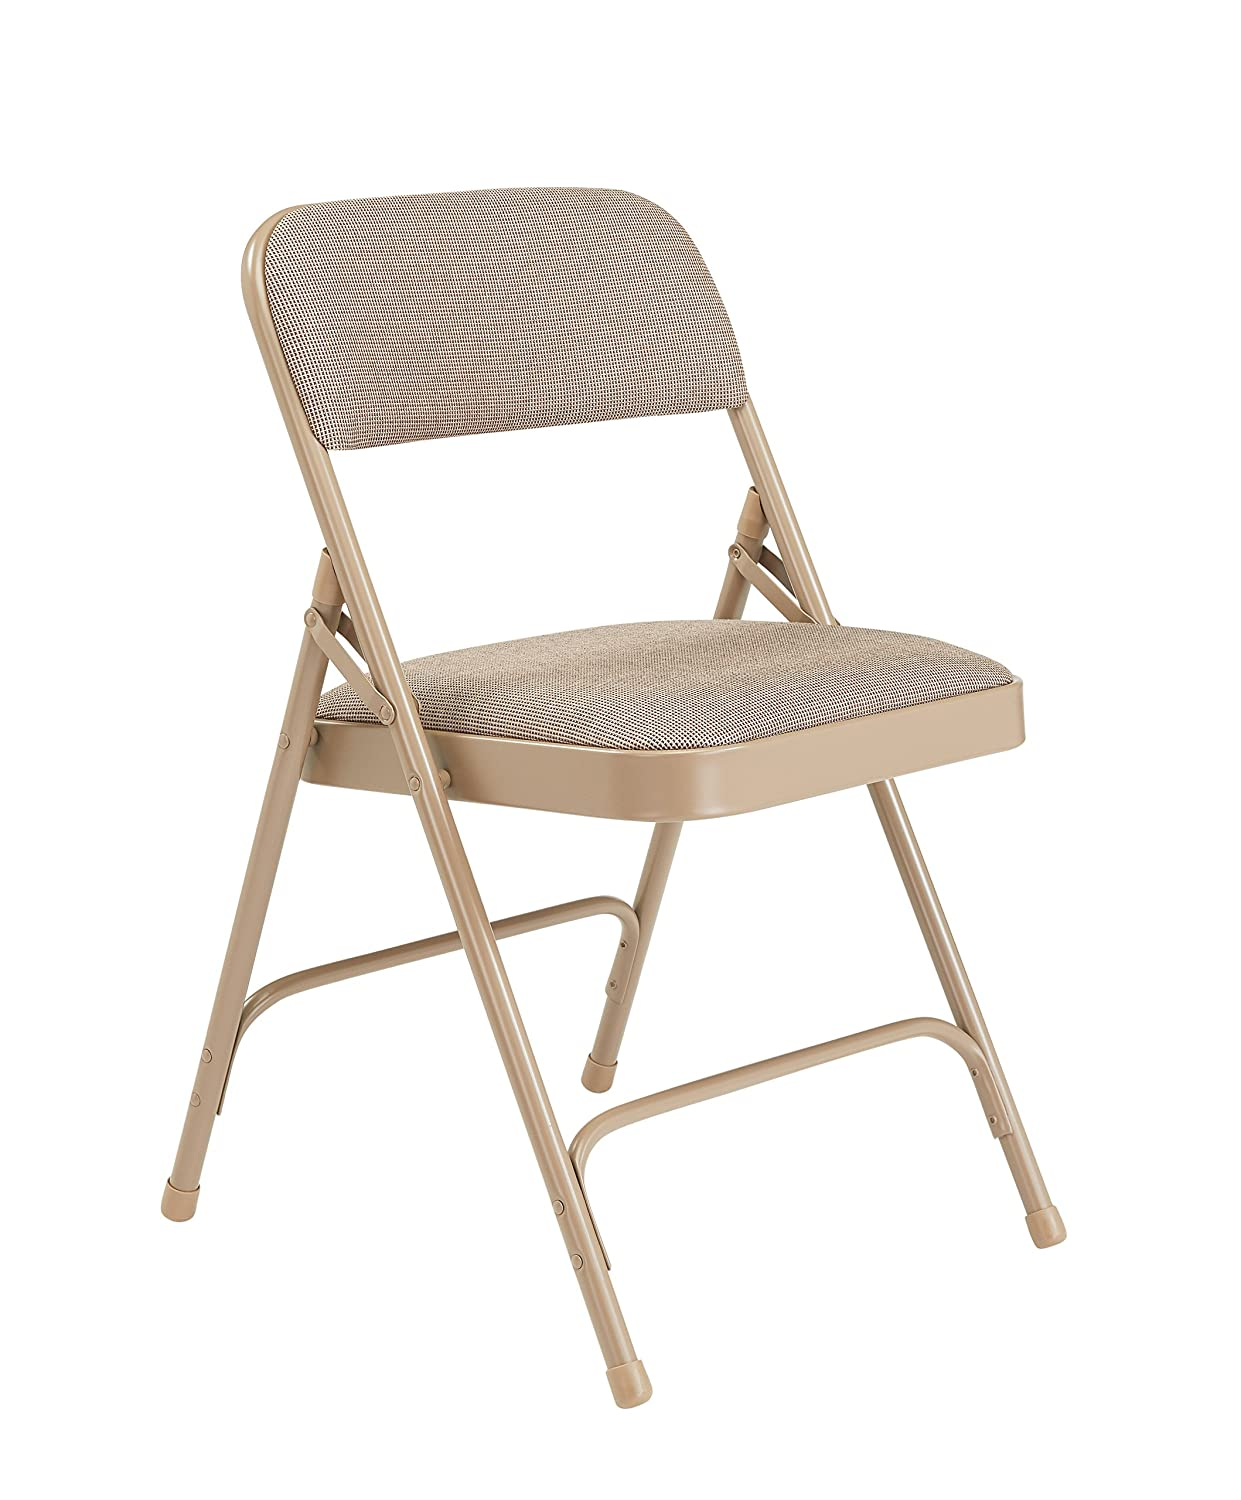 National Public Seating 2201 Series Steel Frame Upholstered Premium Fabric Seat and Back Folding Chair with Double Brace, 480 lbs Capacity, Cafe Beige/Beige (Carton of 4)